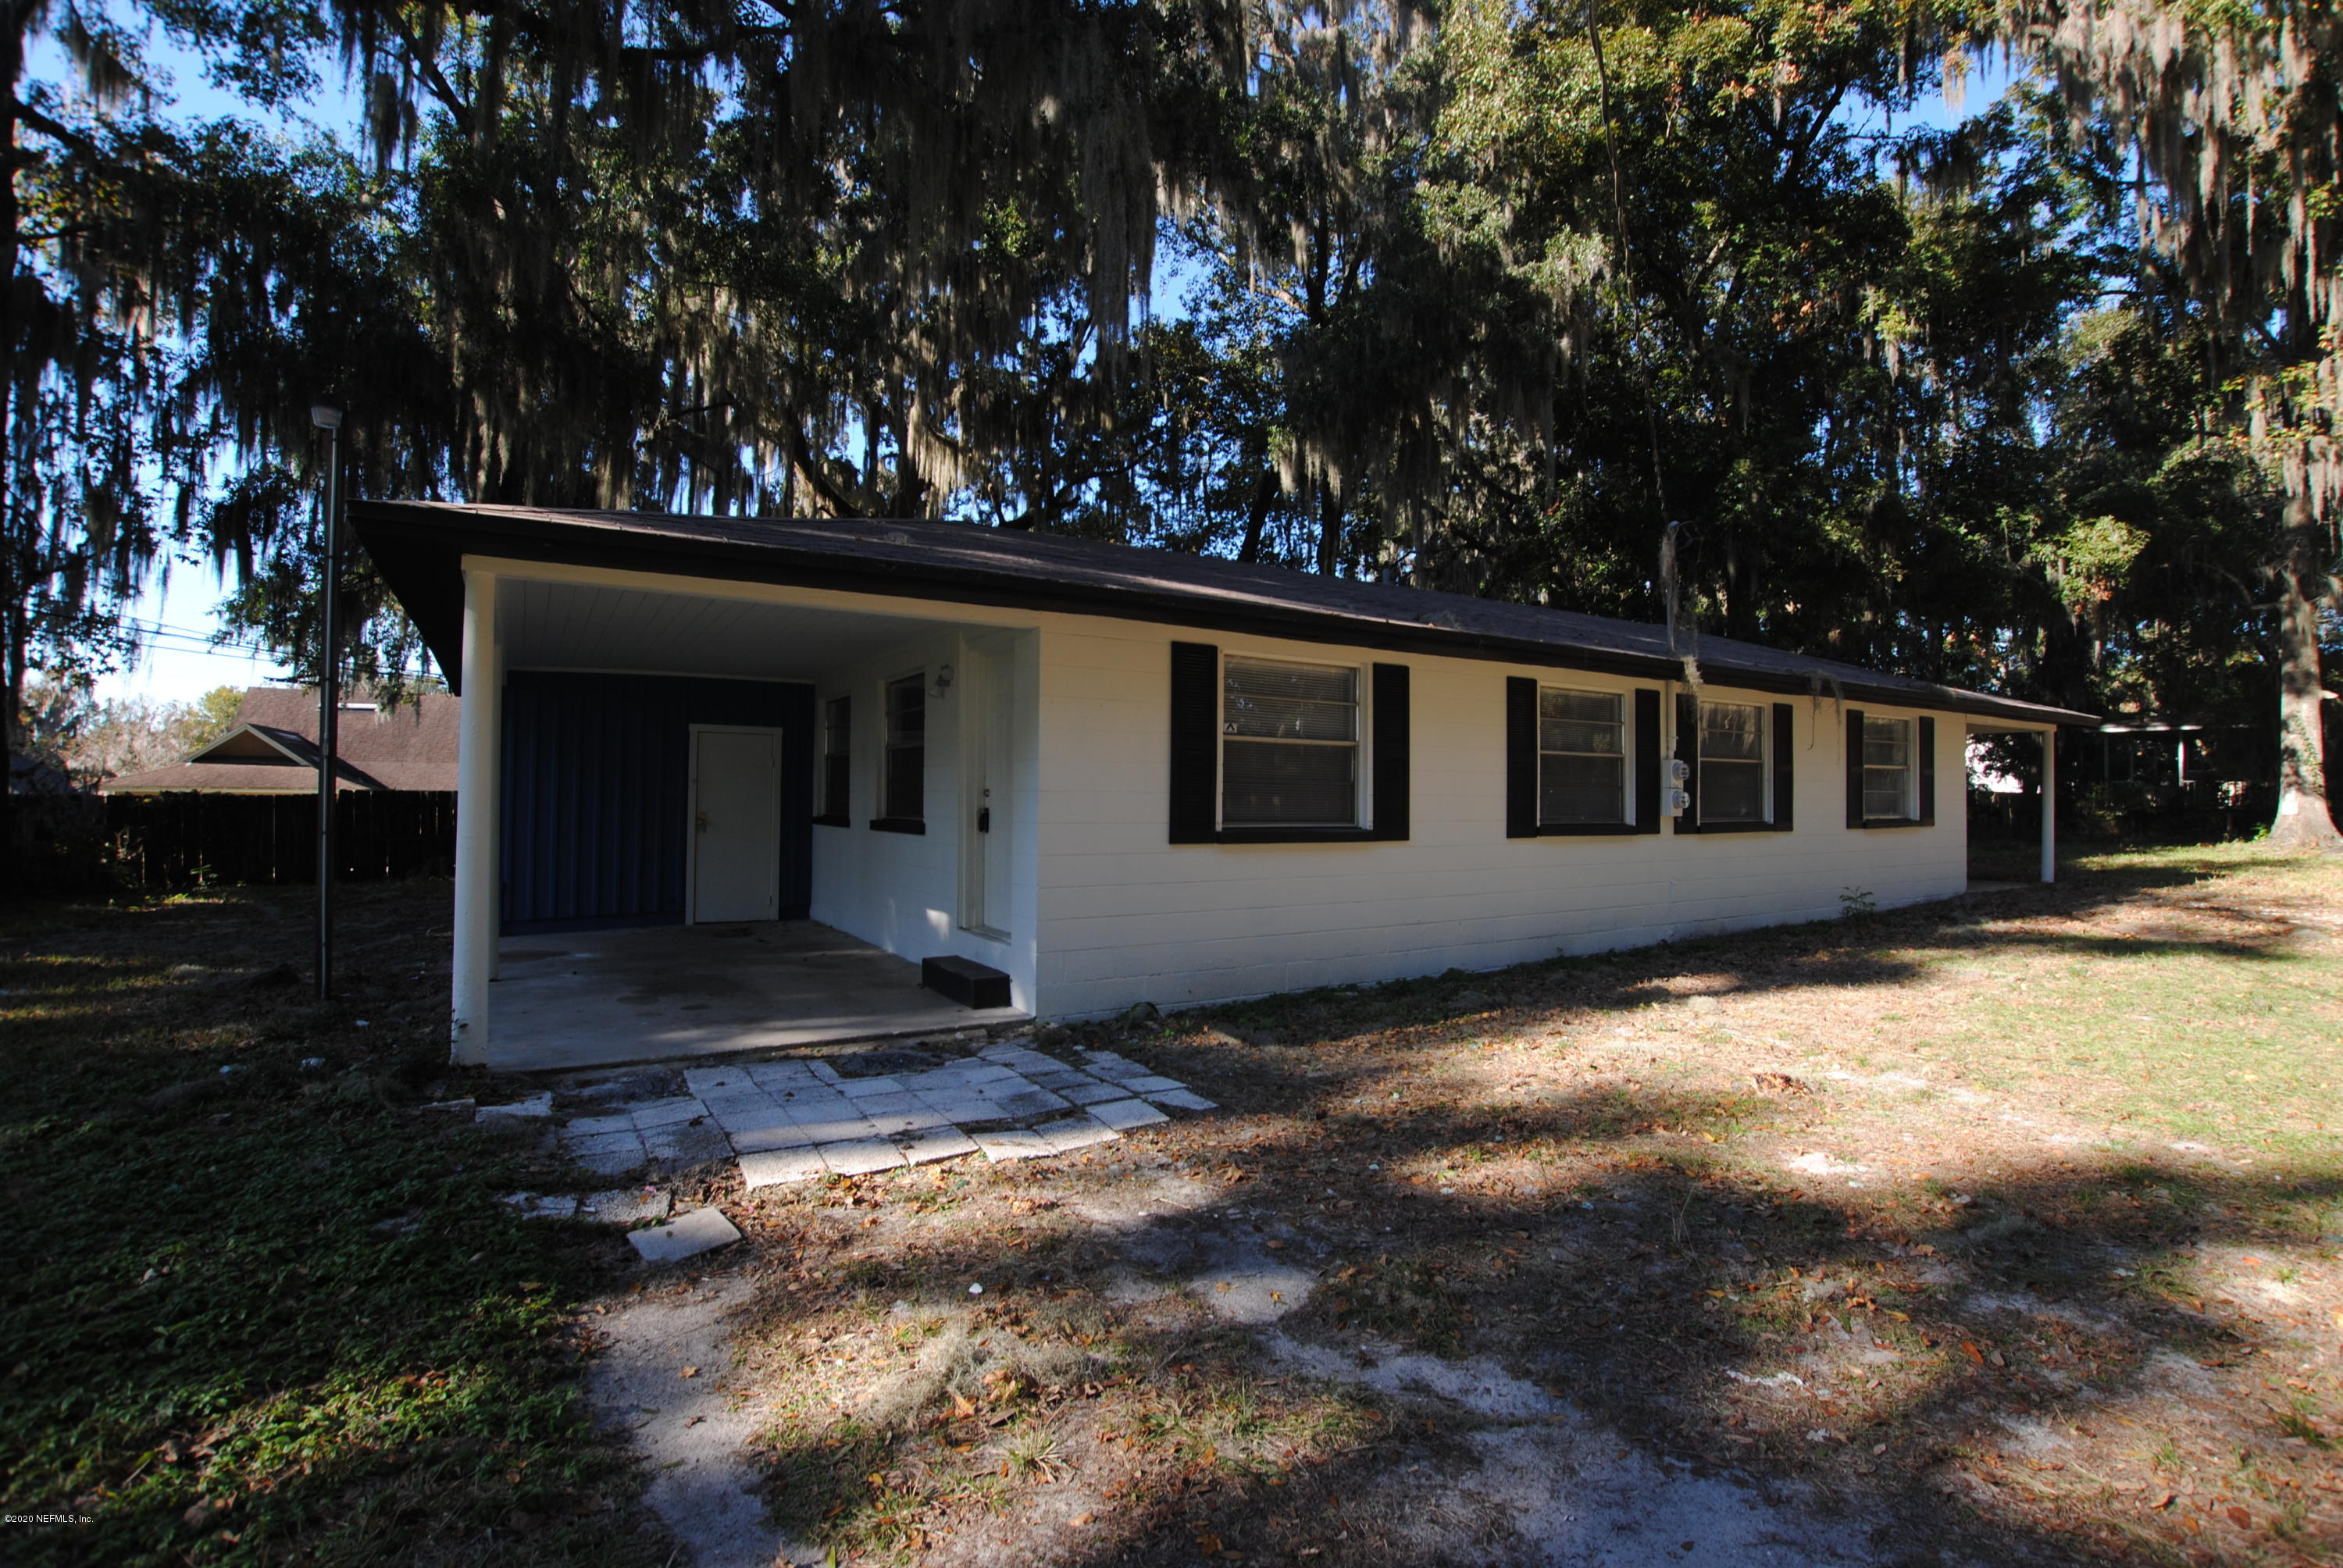 1256 HICKORY COVE, ORANGE PARK, FLORIDA 32073, 1 Bedroom Bedrooms, ,1 BathroomBathrooms,Rental,For sale,HICKORY COVE,1033466